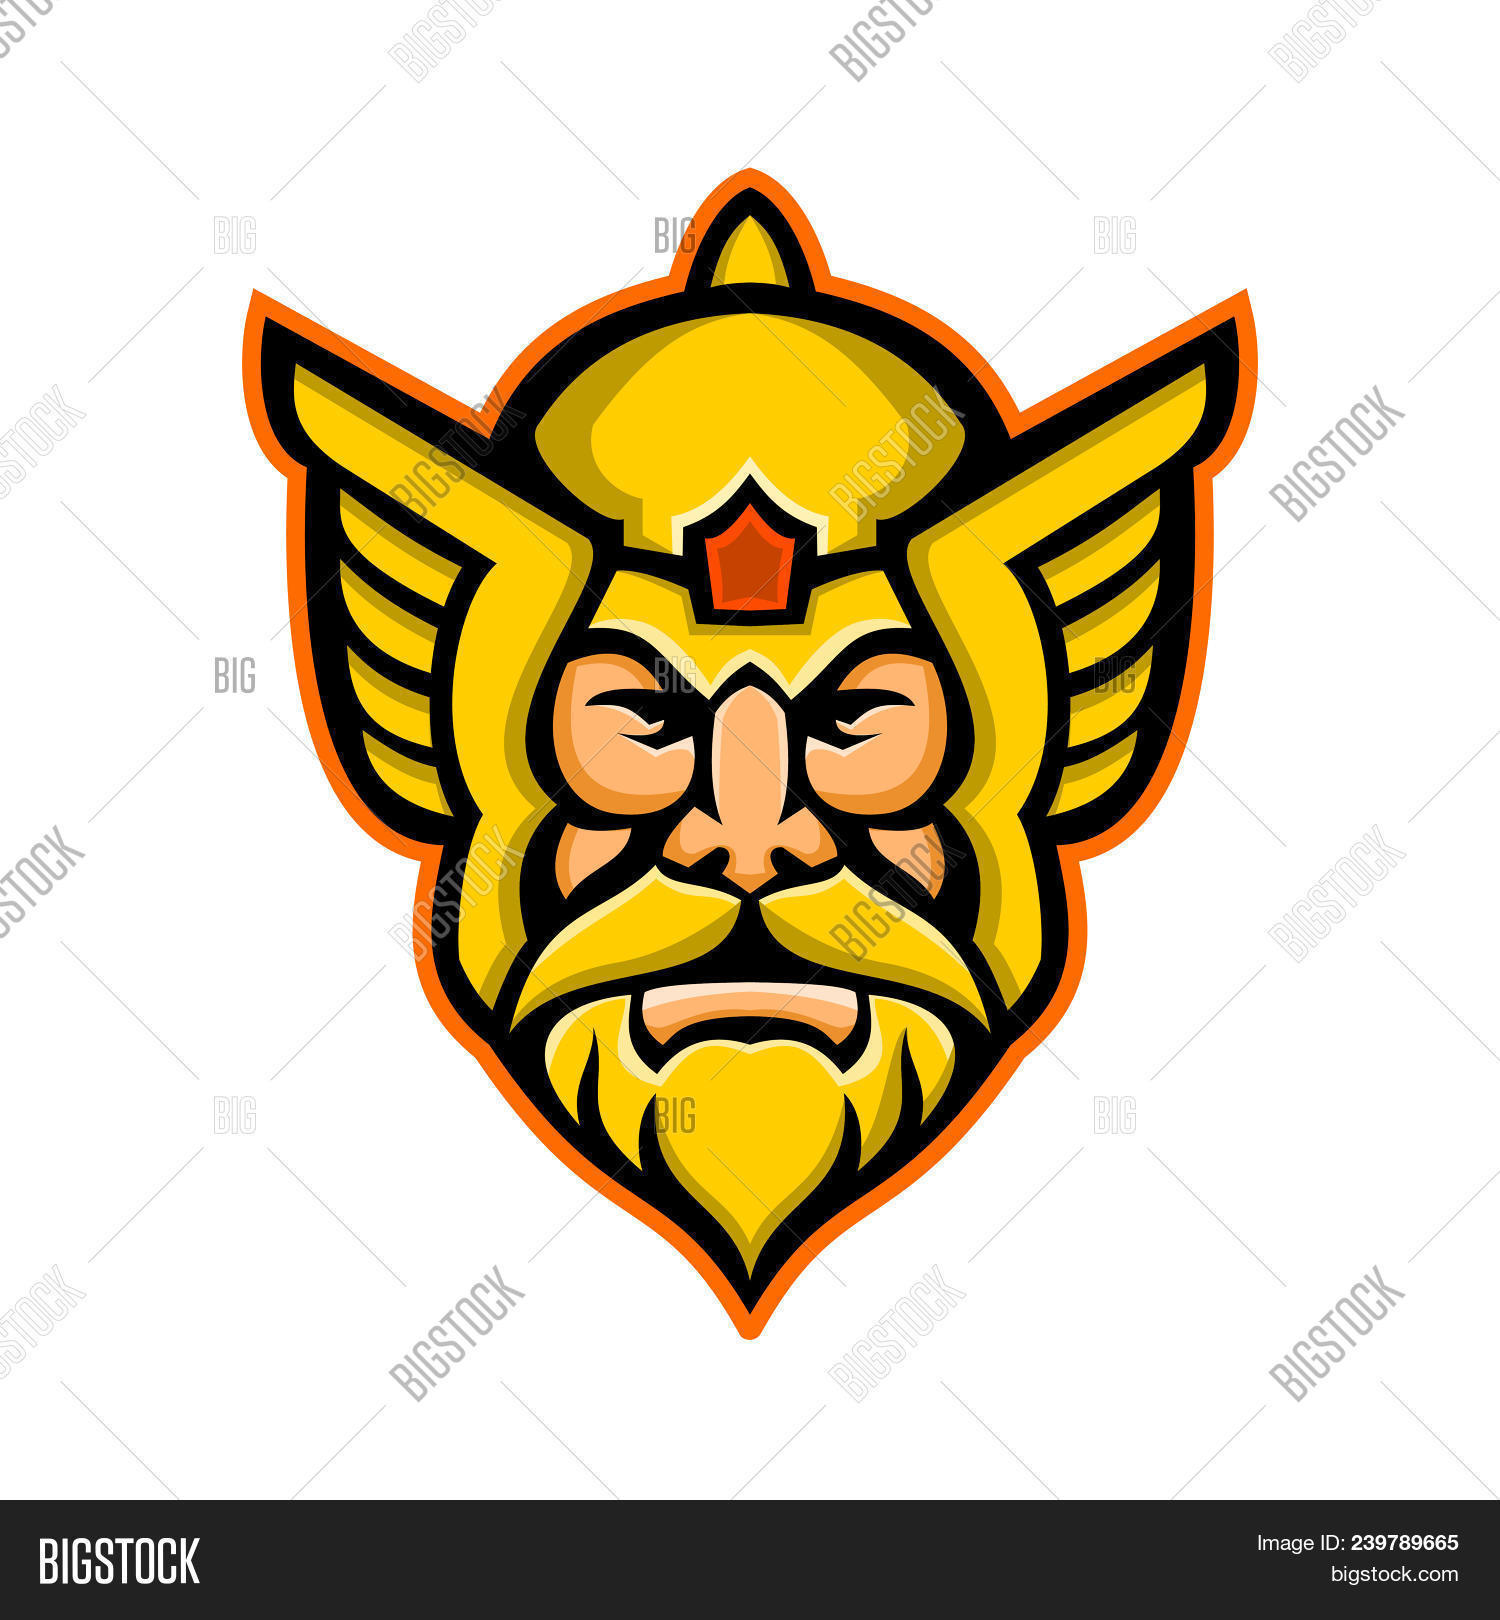 mascot icon image photo free trial bigstock rh bigstockphoto com Thor Face Comic Drawings Two- Face Logo